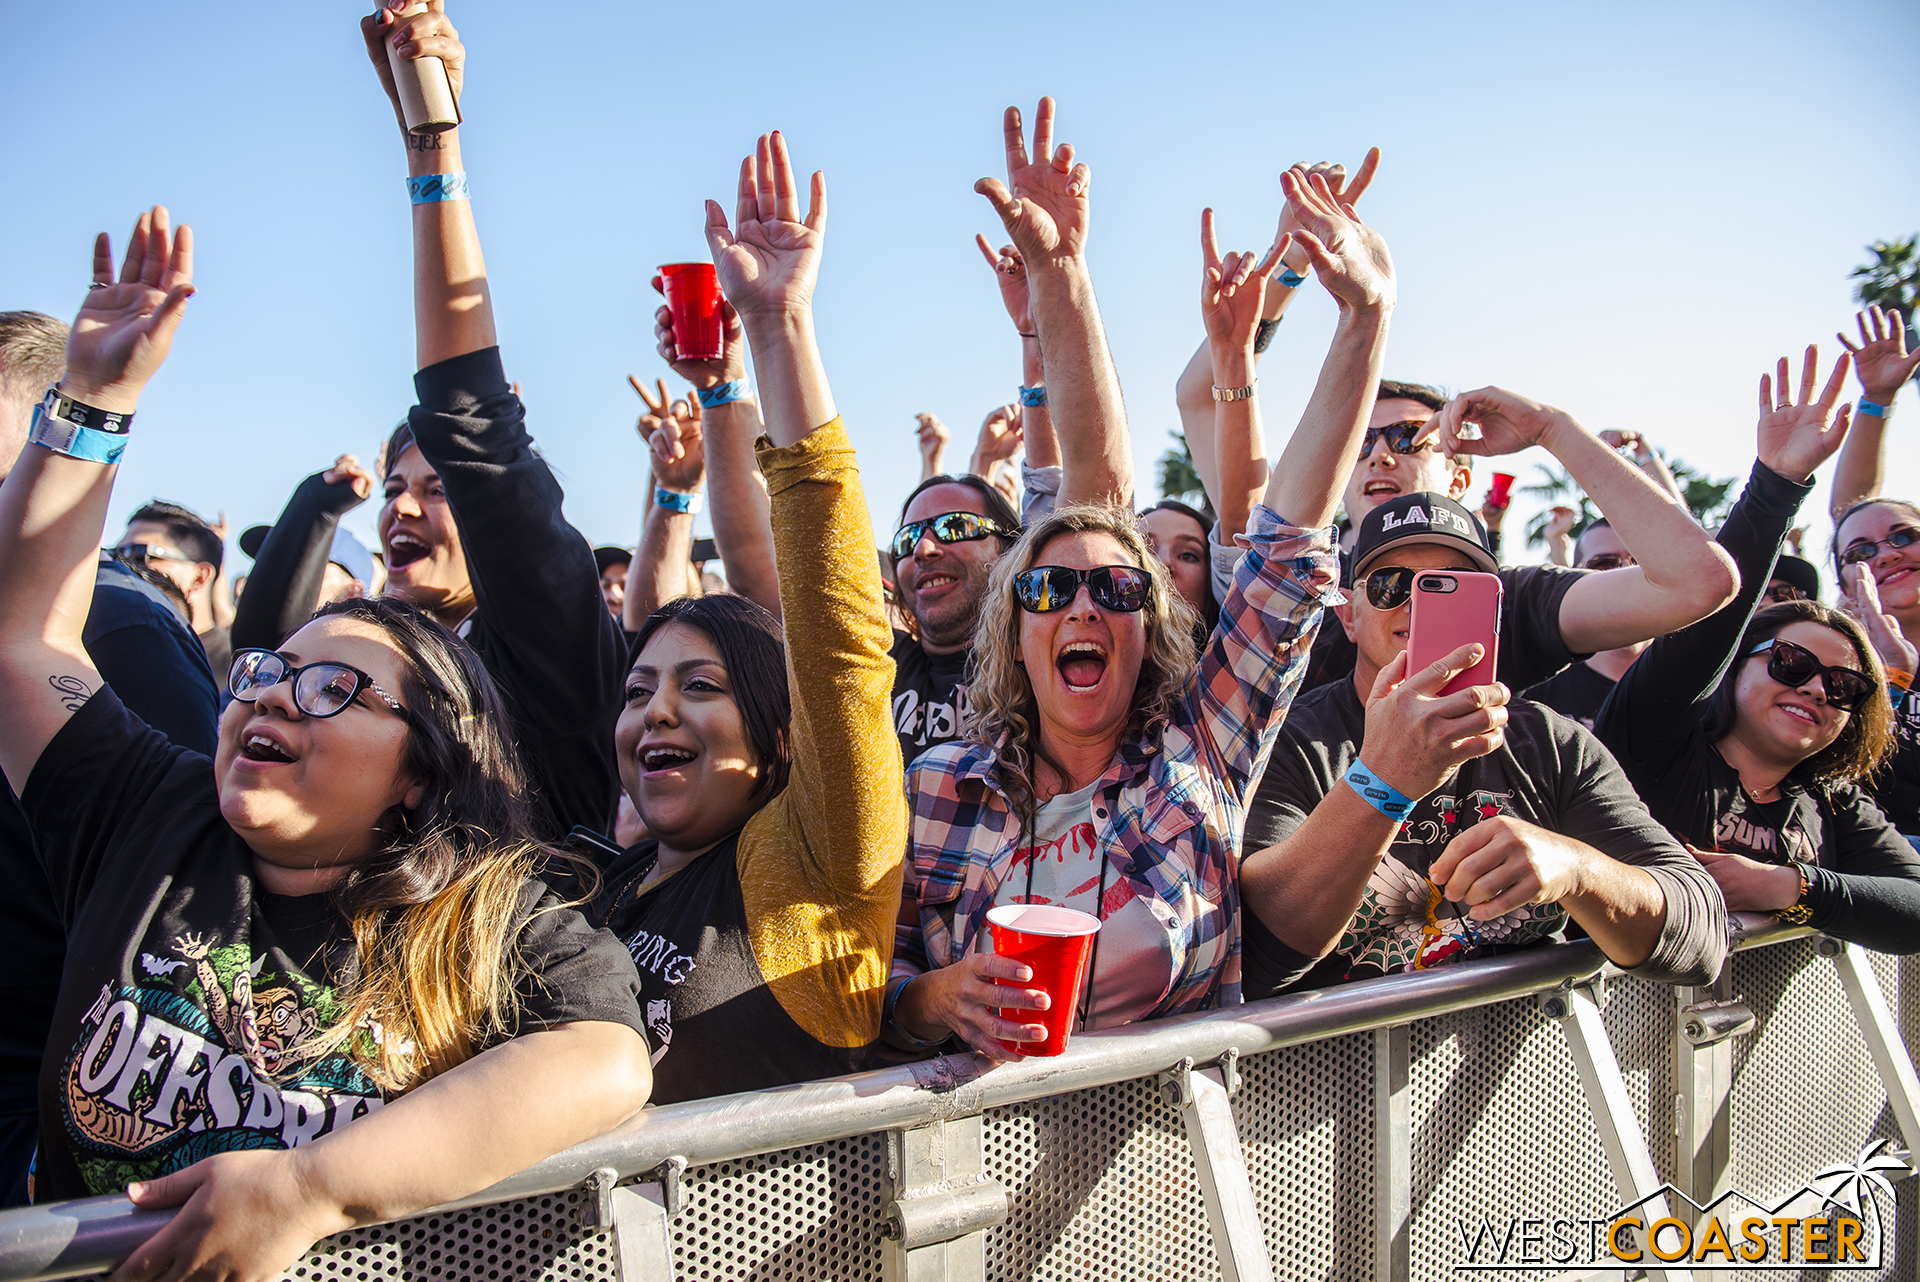 Fans enjoying the music line-up last year.